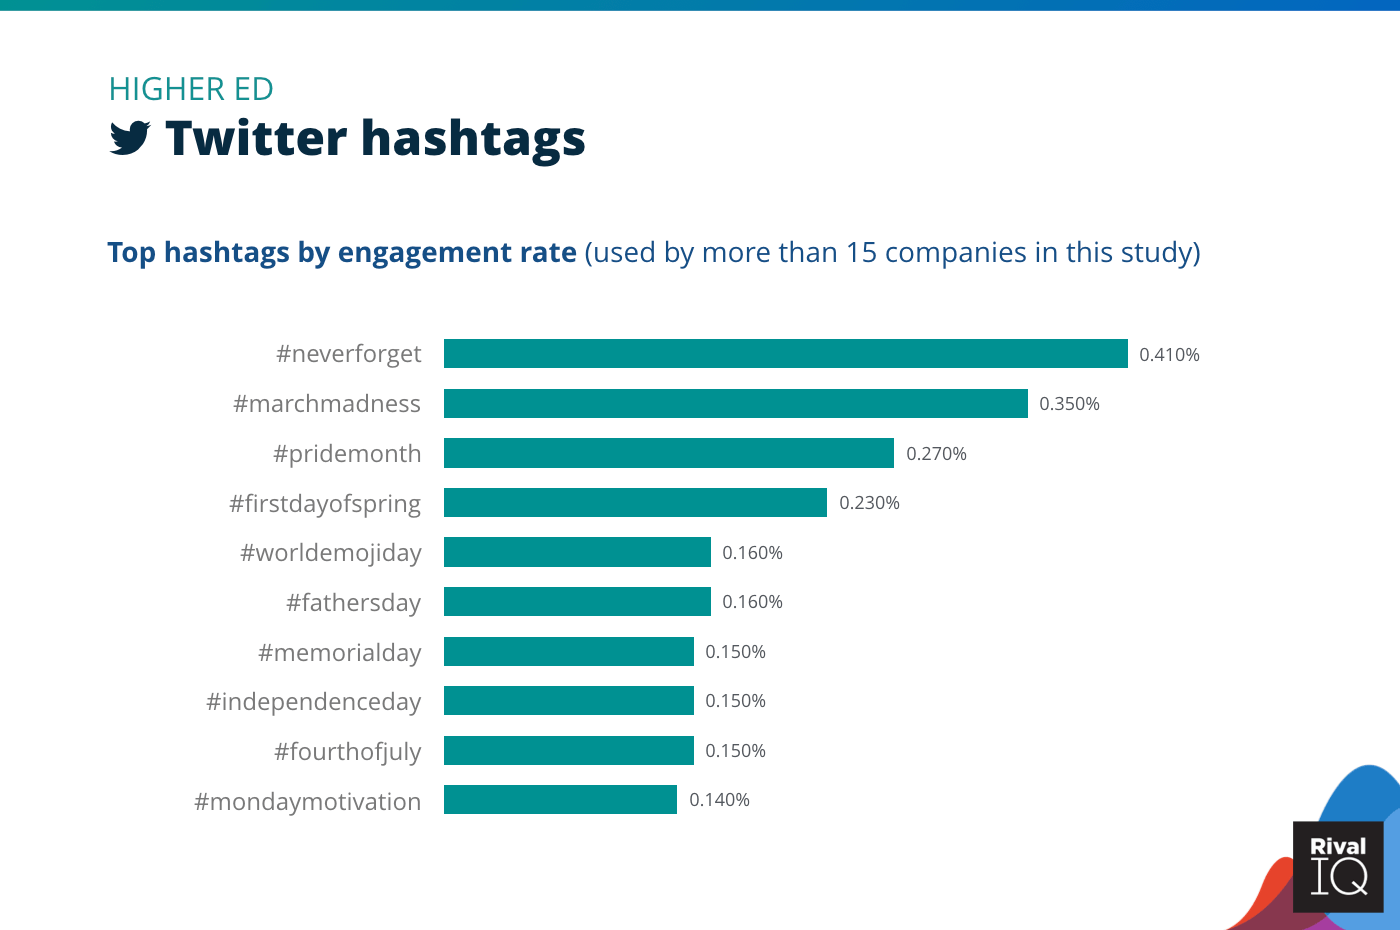 Chart of Top Twitter hashtags by engagement rate, Higher E